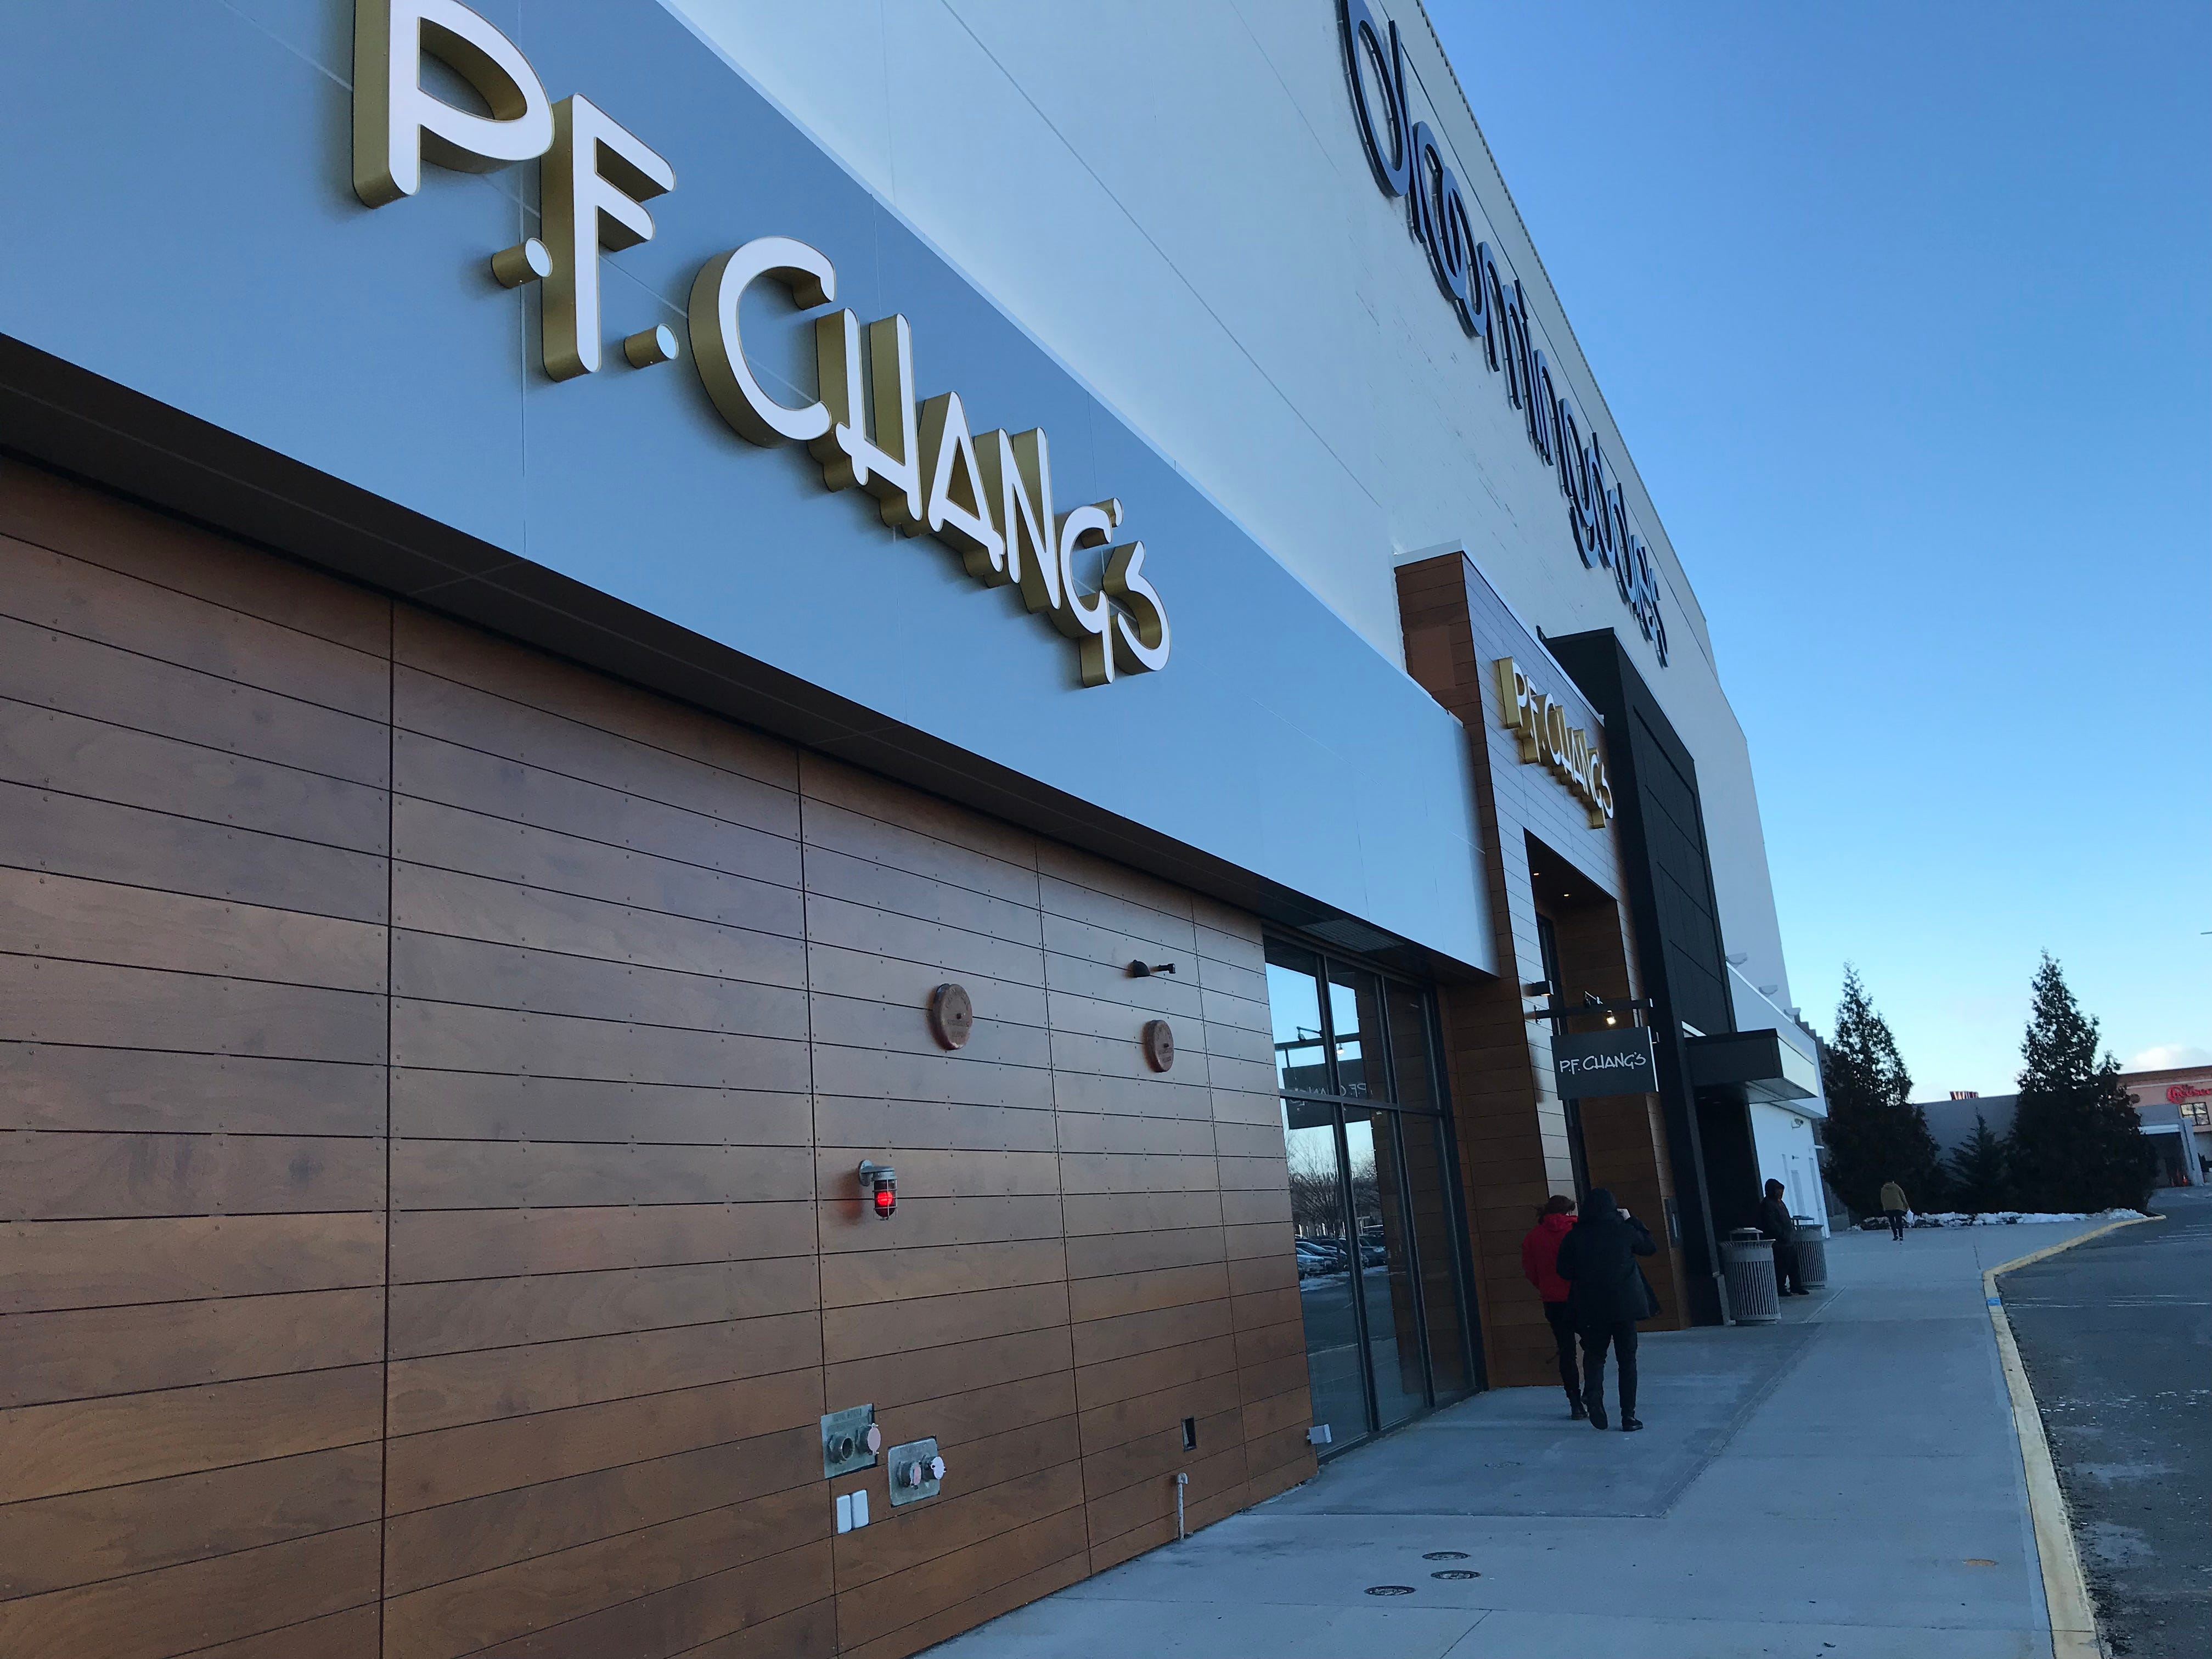 A new P.F. Chang's at Willowbrook Mall in Wayne opened Jan. 21, 2019.